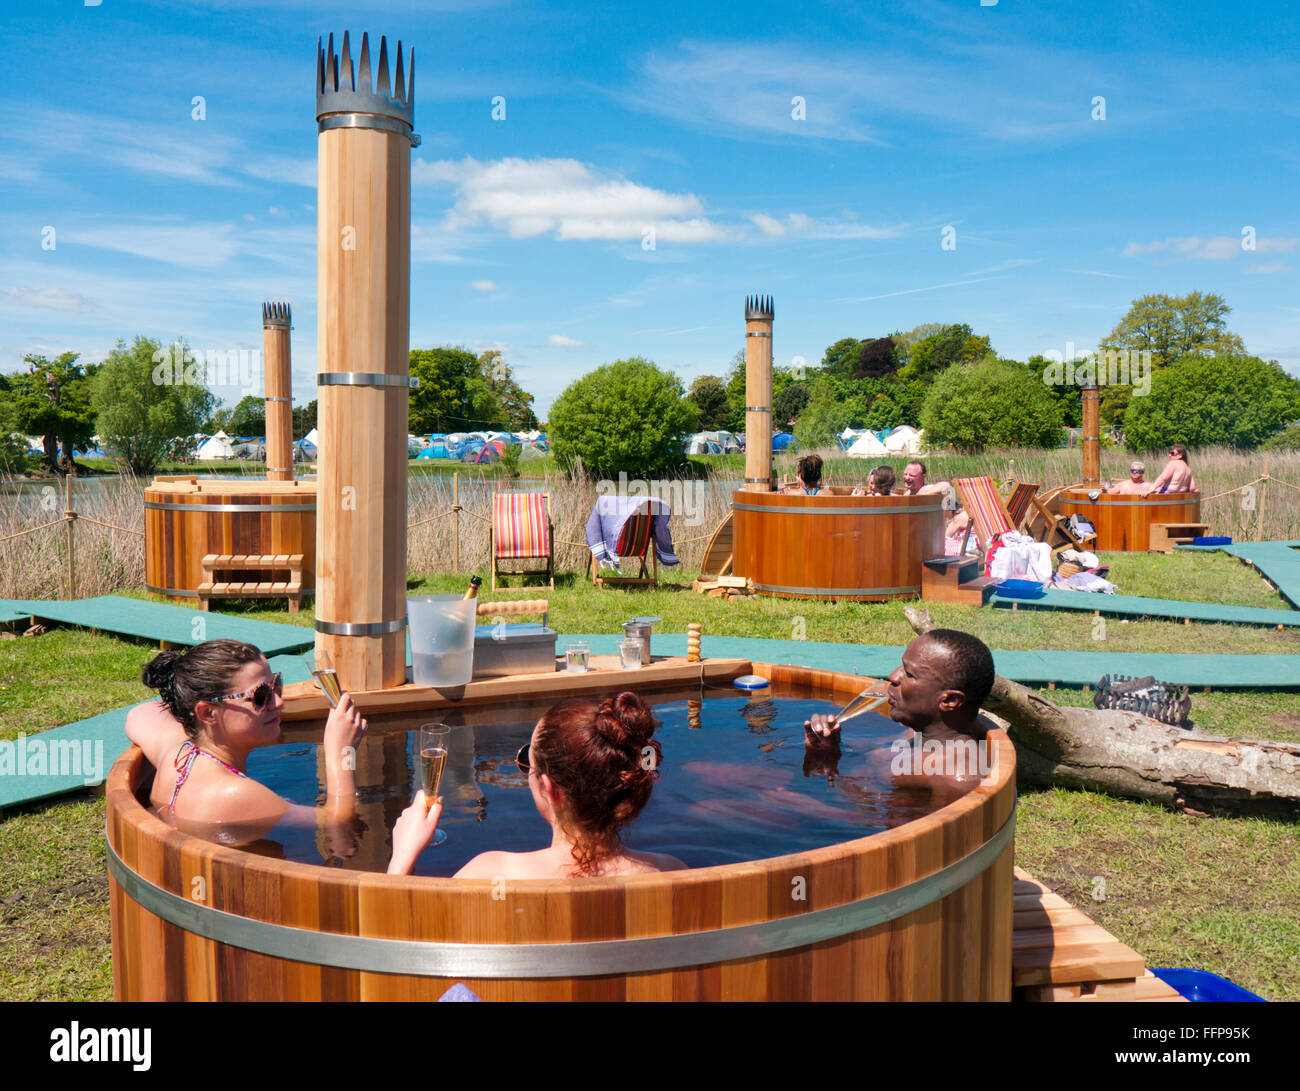 People drinking champagne in a hot tub powered by a built in wood burner at a festival in Britain Stock Photo